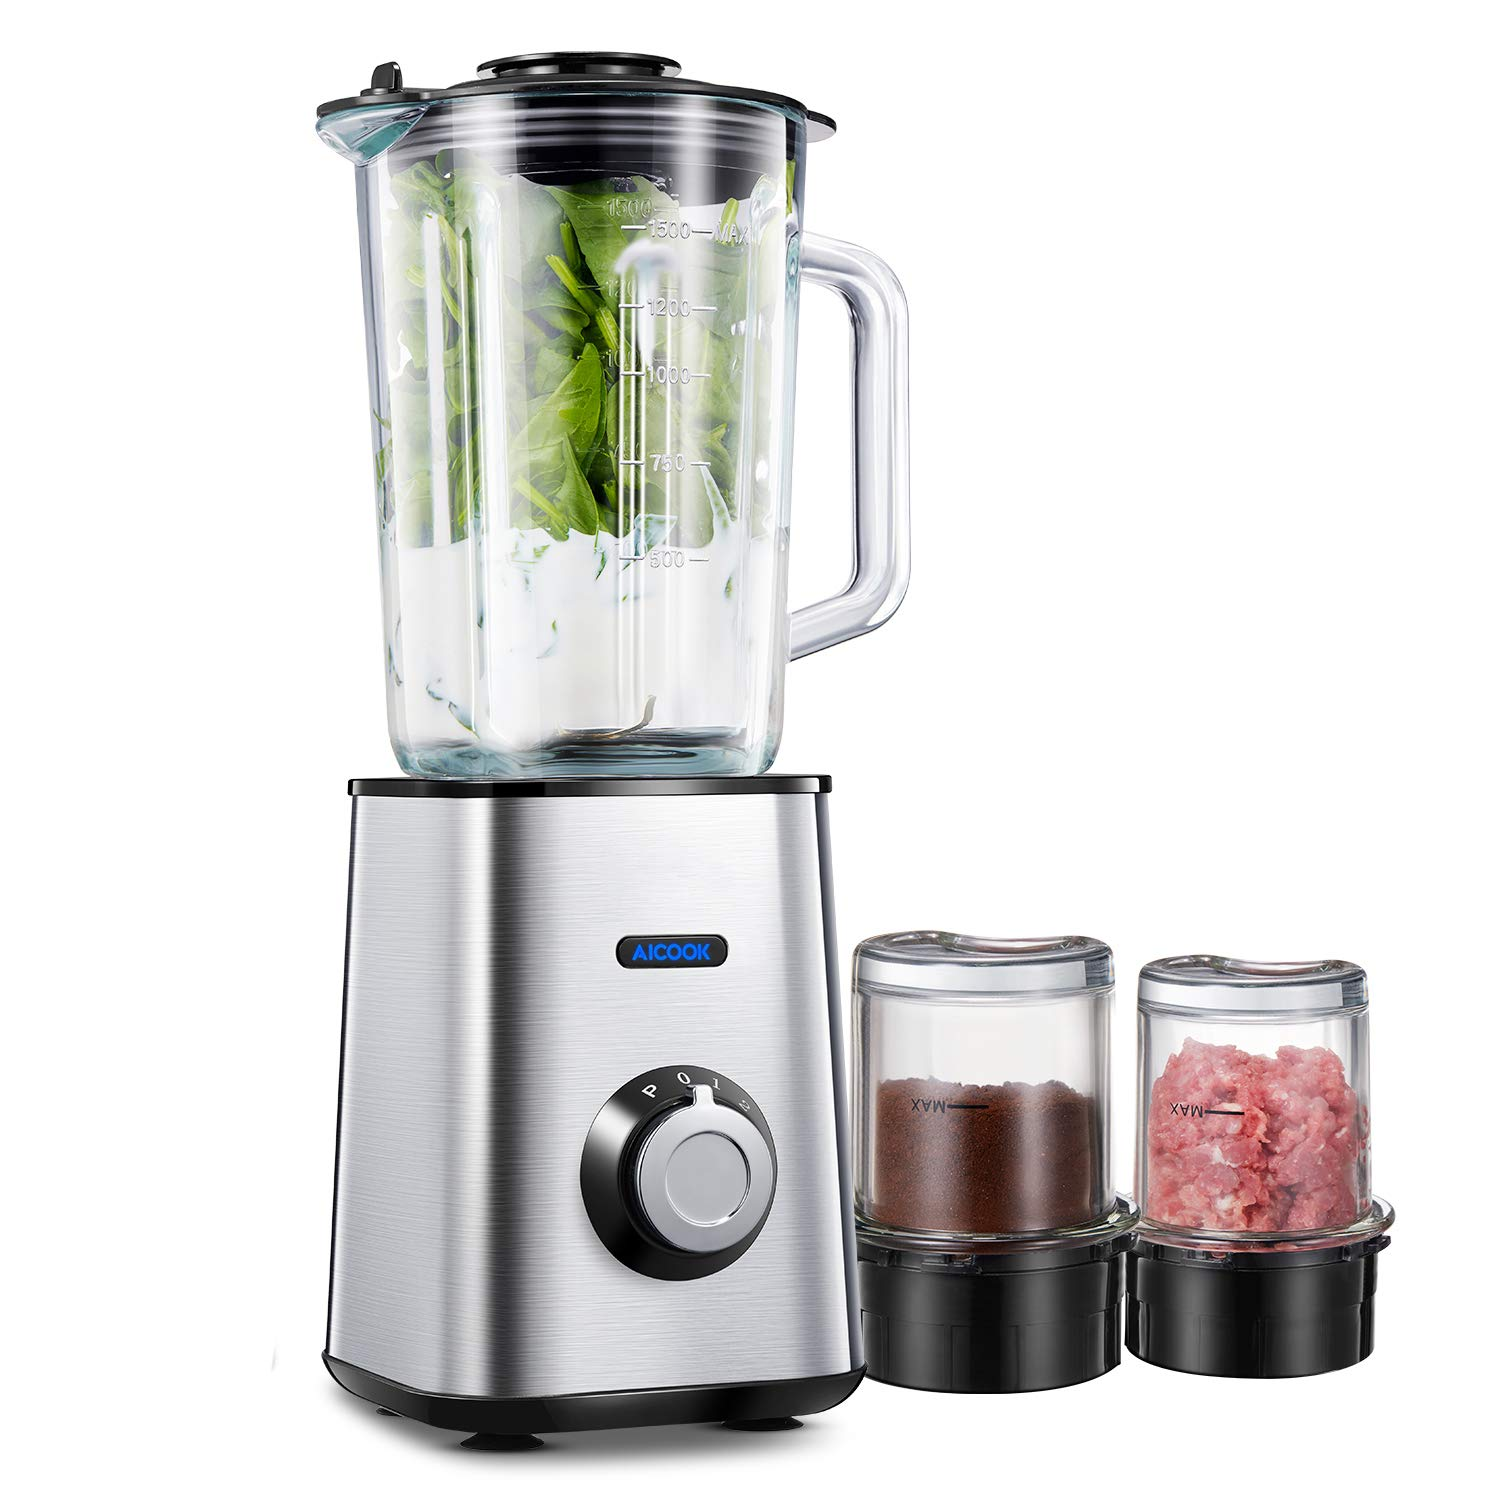 Blender, Aicook Smoothie Blender, Multifunctional Blender with 51.5oz Glass Jar, 8.5oz Grinding Cup, 8.5oz Meat Mincing Cup and 3 Titanium Coated Blades, Silver